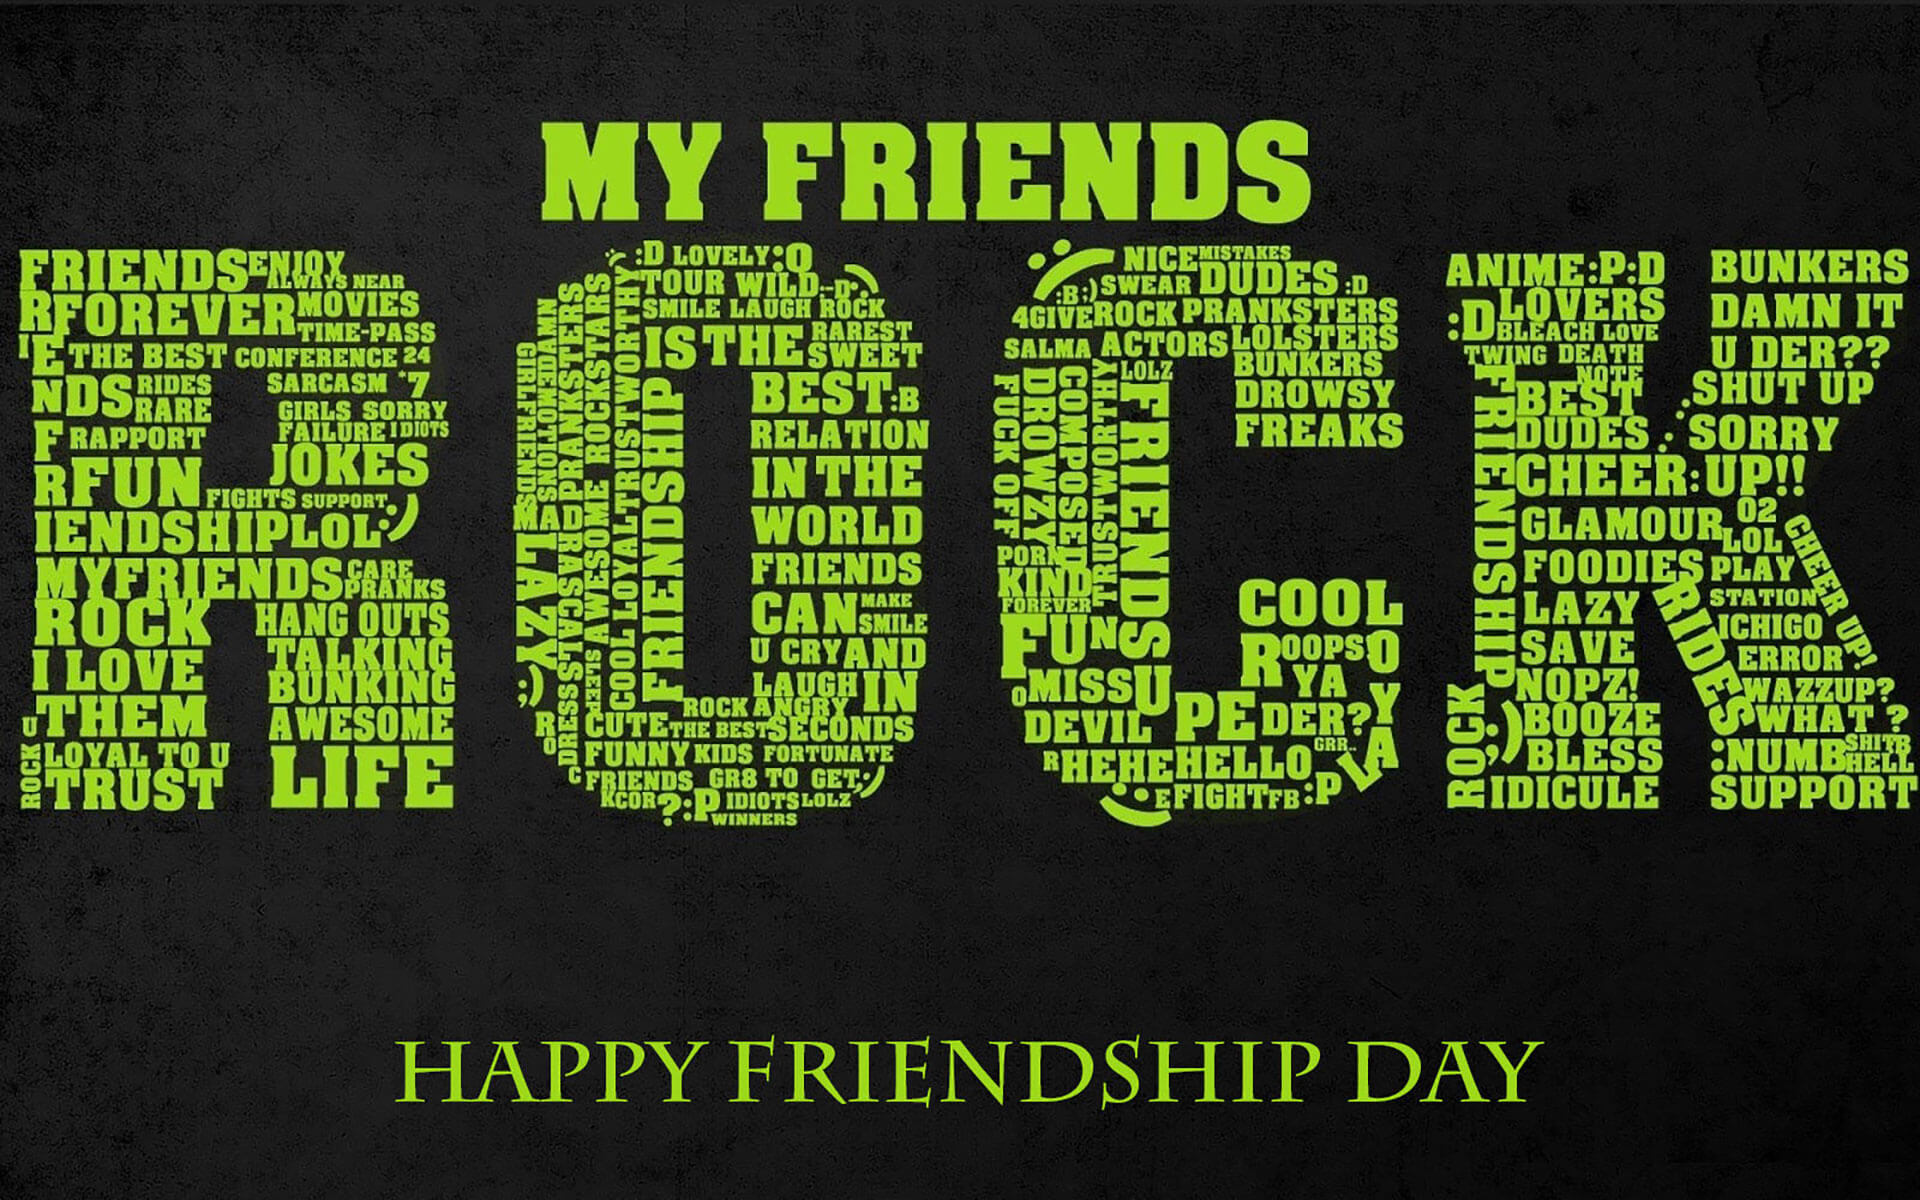 happy friendship day meanings rock hd wallpaper